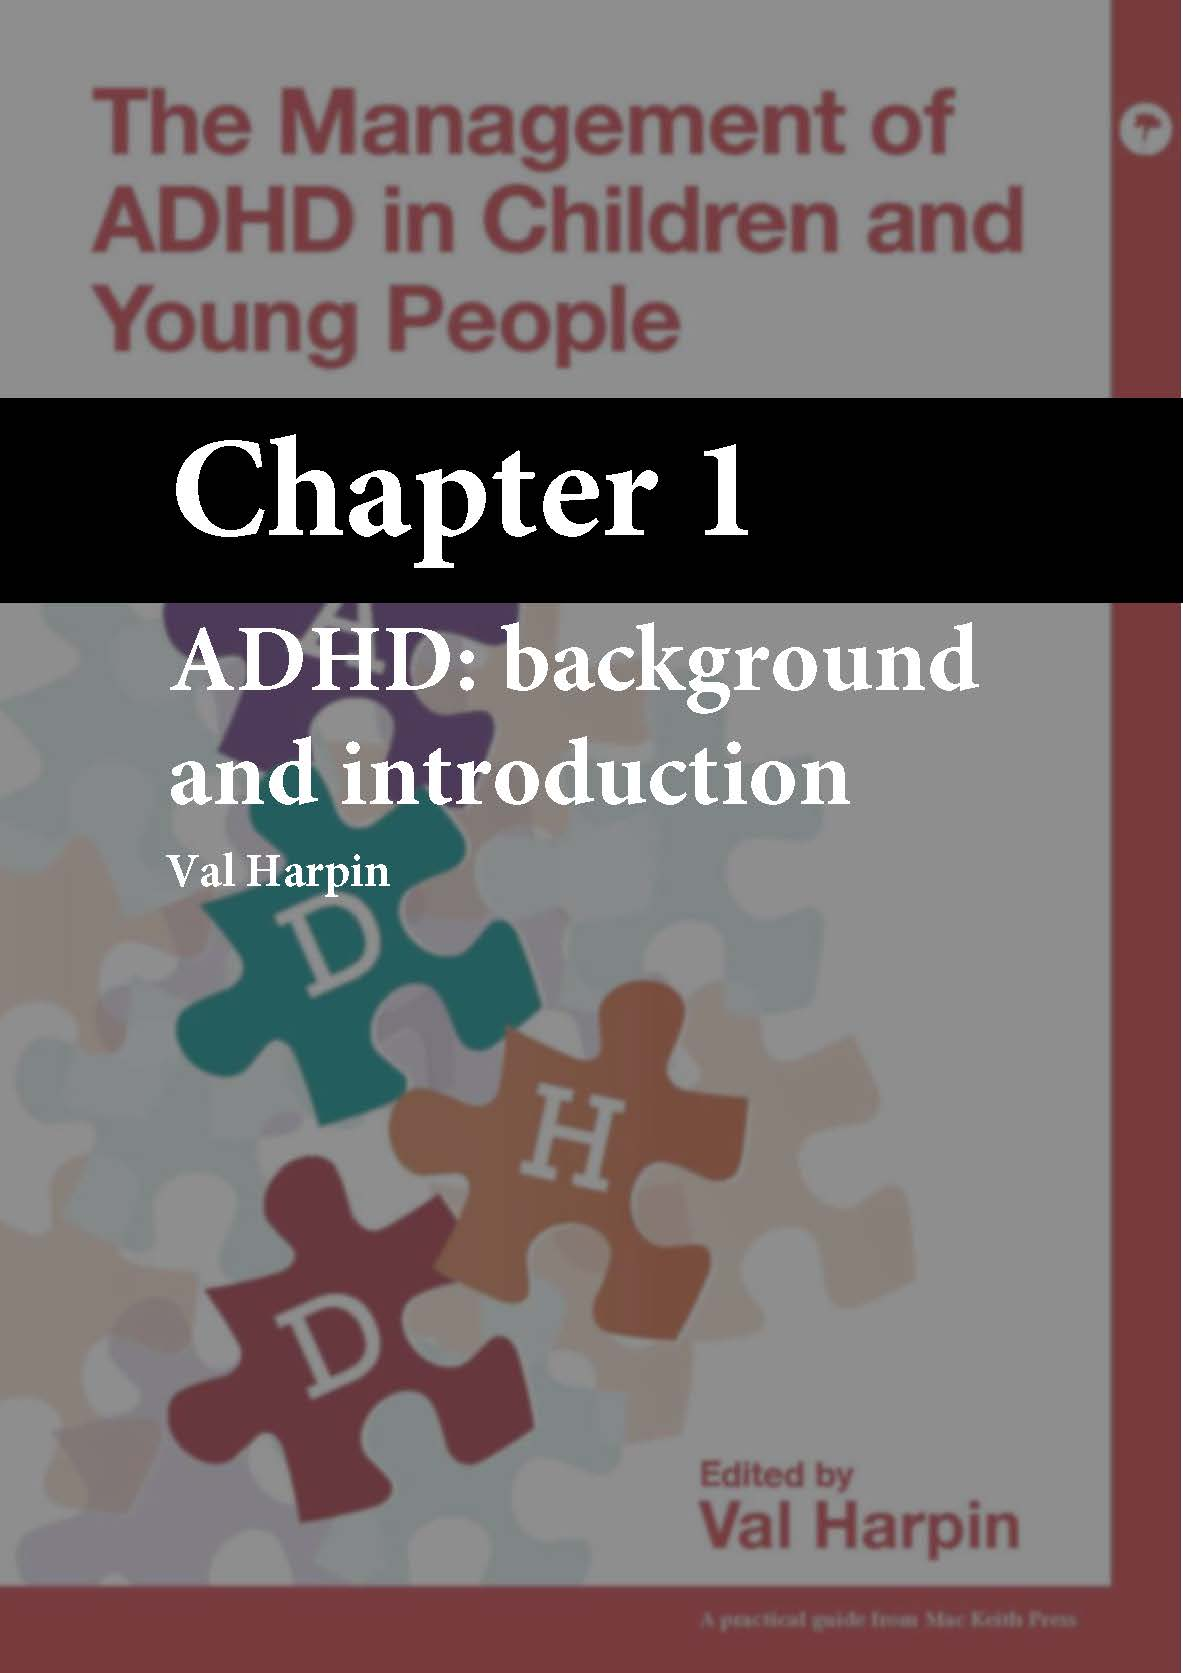 The Management of ADHD in Children and Young People, Harpin, Chapter 1 cover